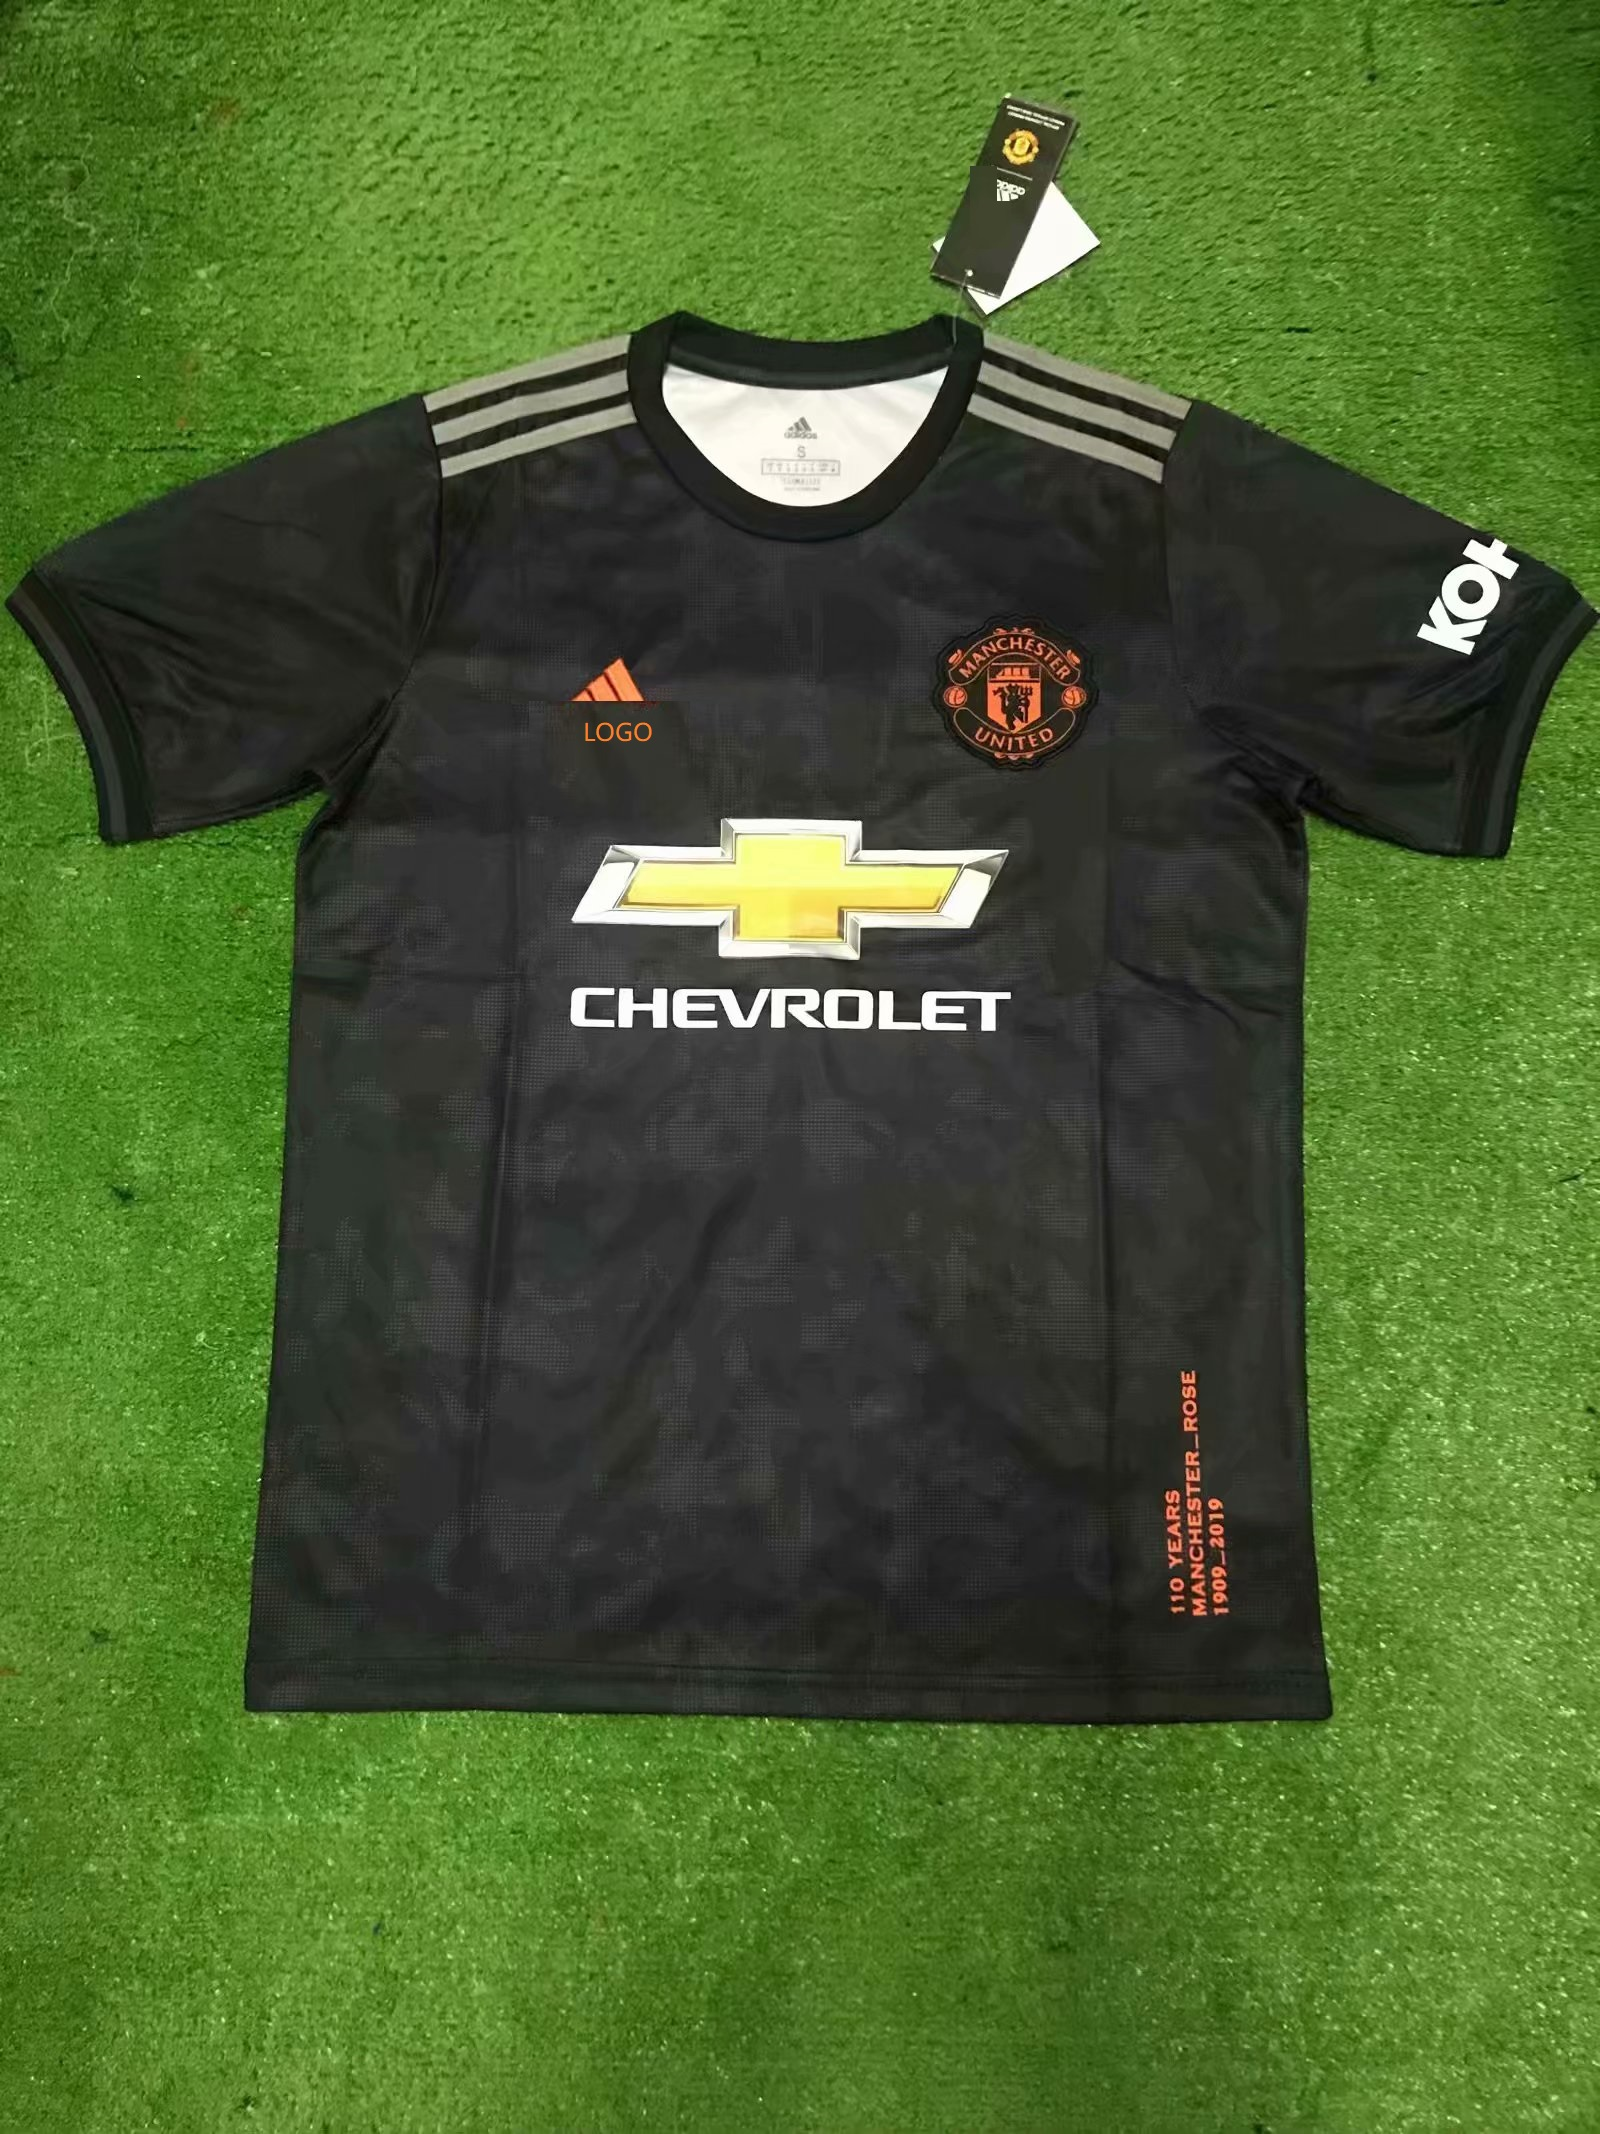 new products 896a3 f0531 19/20 Adult Manchester United third away balck fan version Soccer jersey